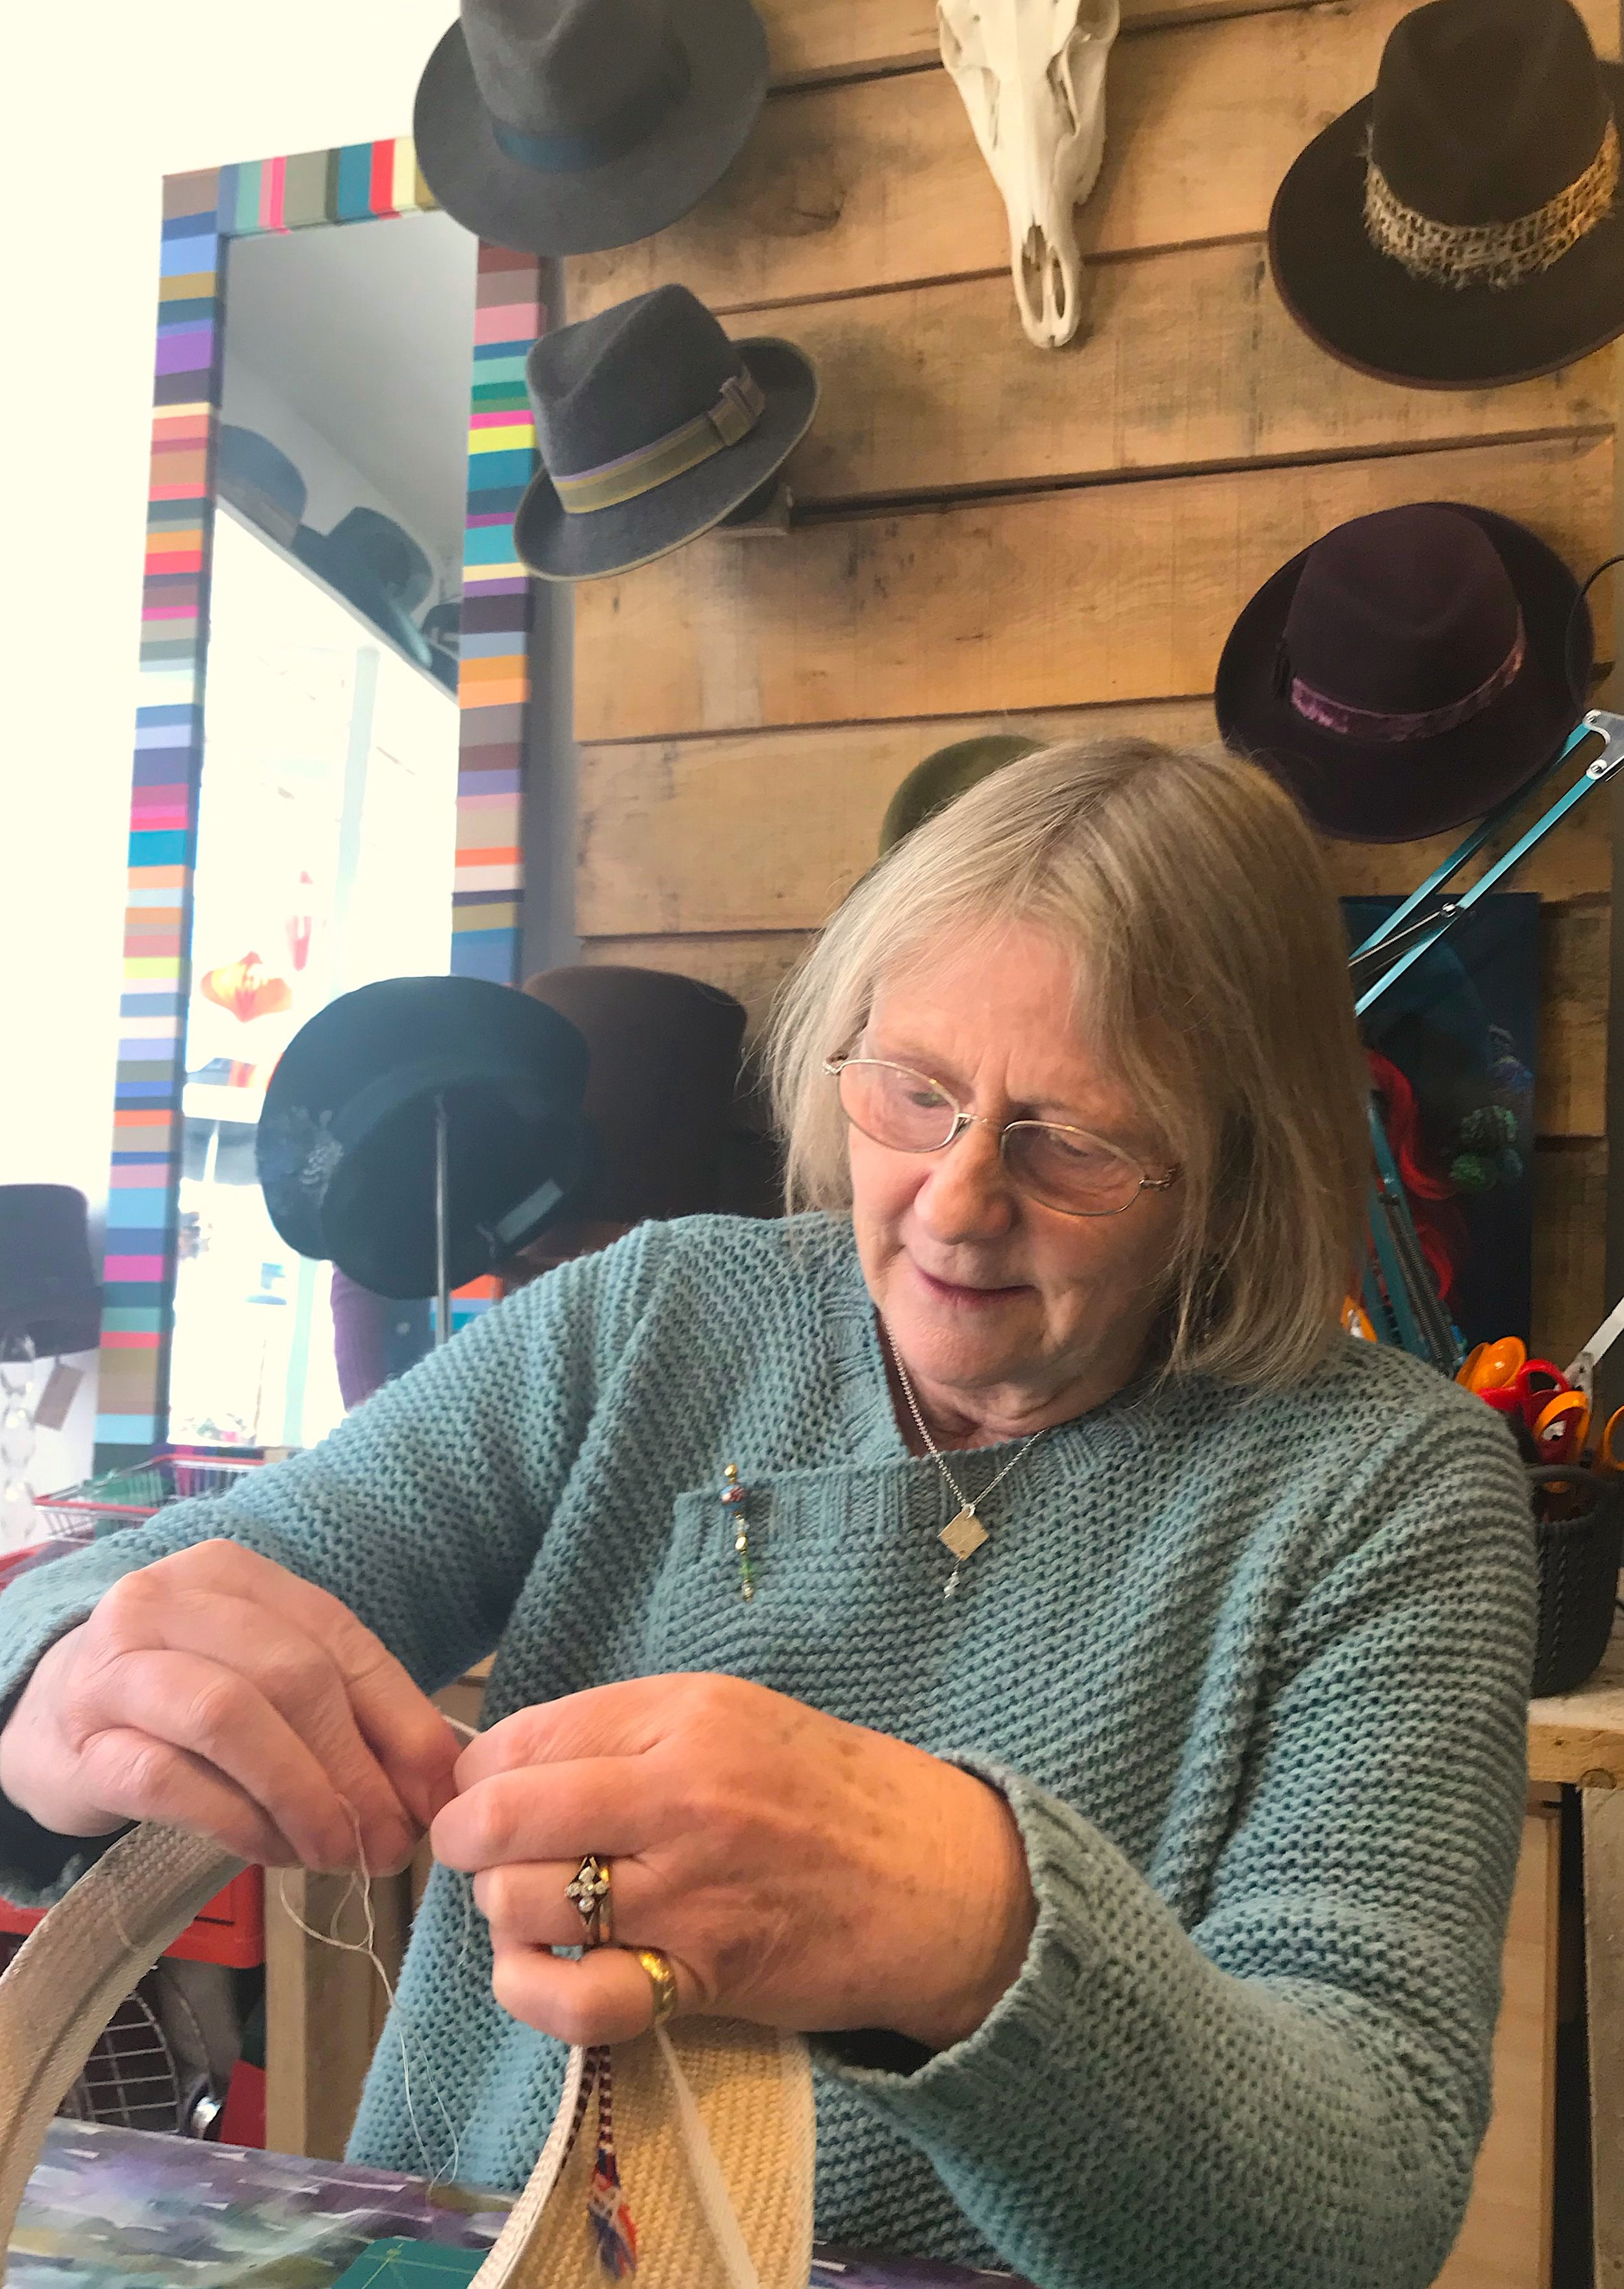 Vera at work on the brim of a straw hat